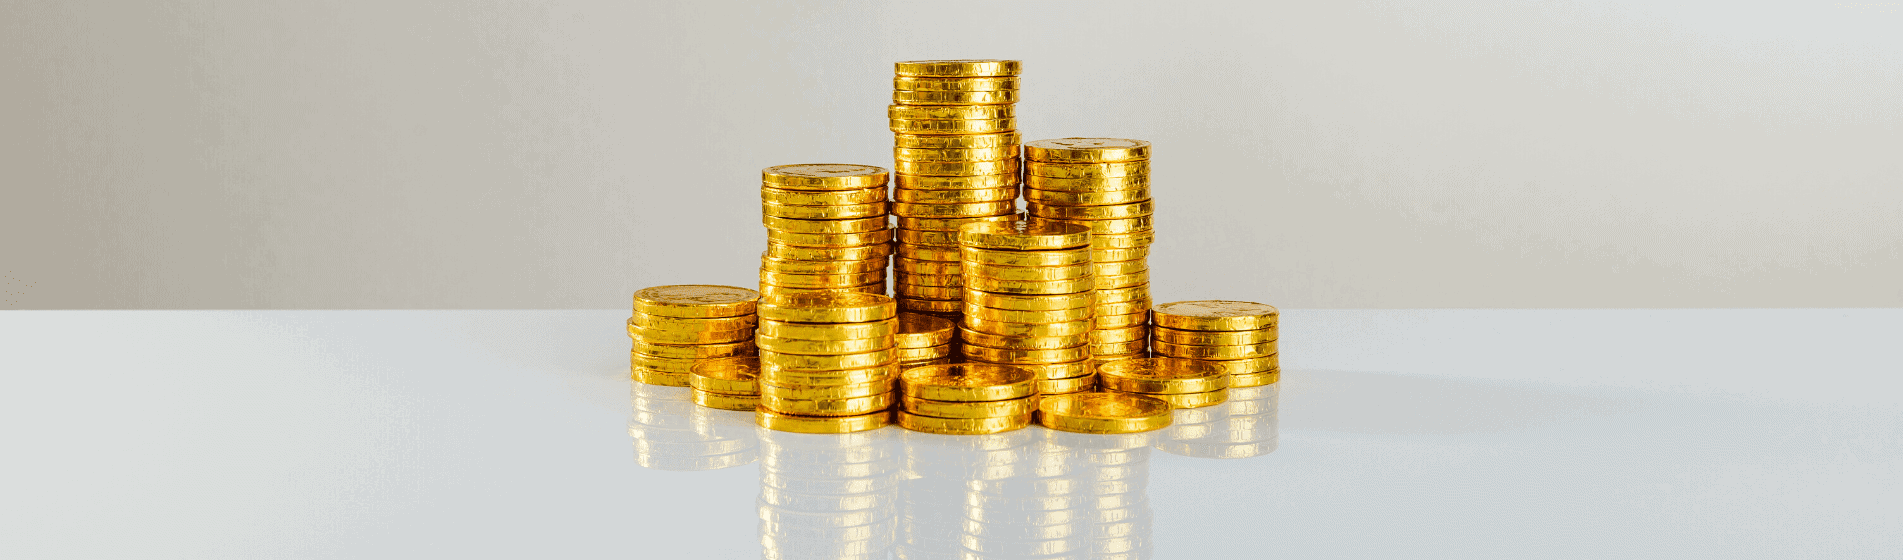 Interested In Getting Paid in Gold? It's Possible in Singapore